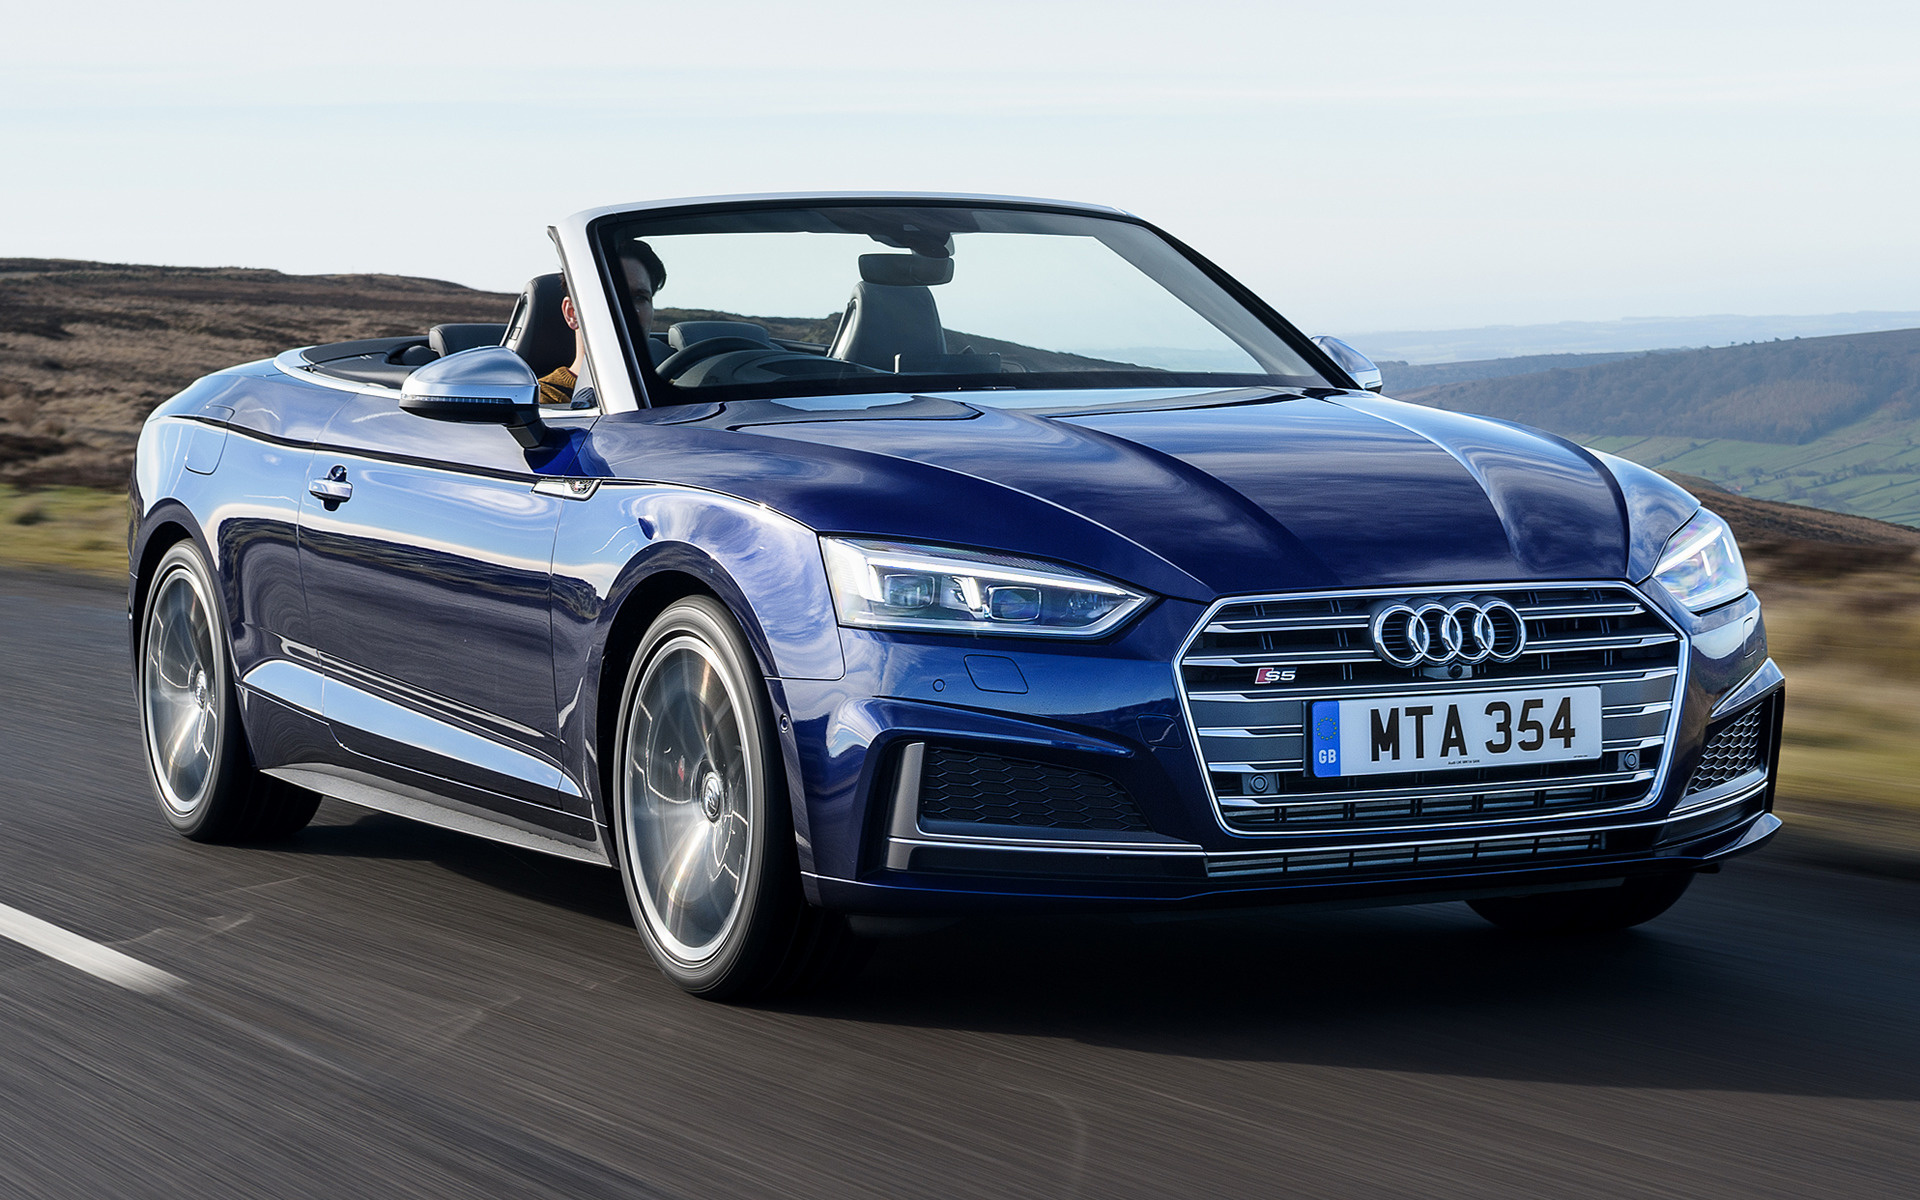 Audi s5 cabriolet 2017 uk wallpapers and hd images car pixel - Car wallpapers for galaxy s5 ...